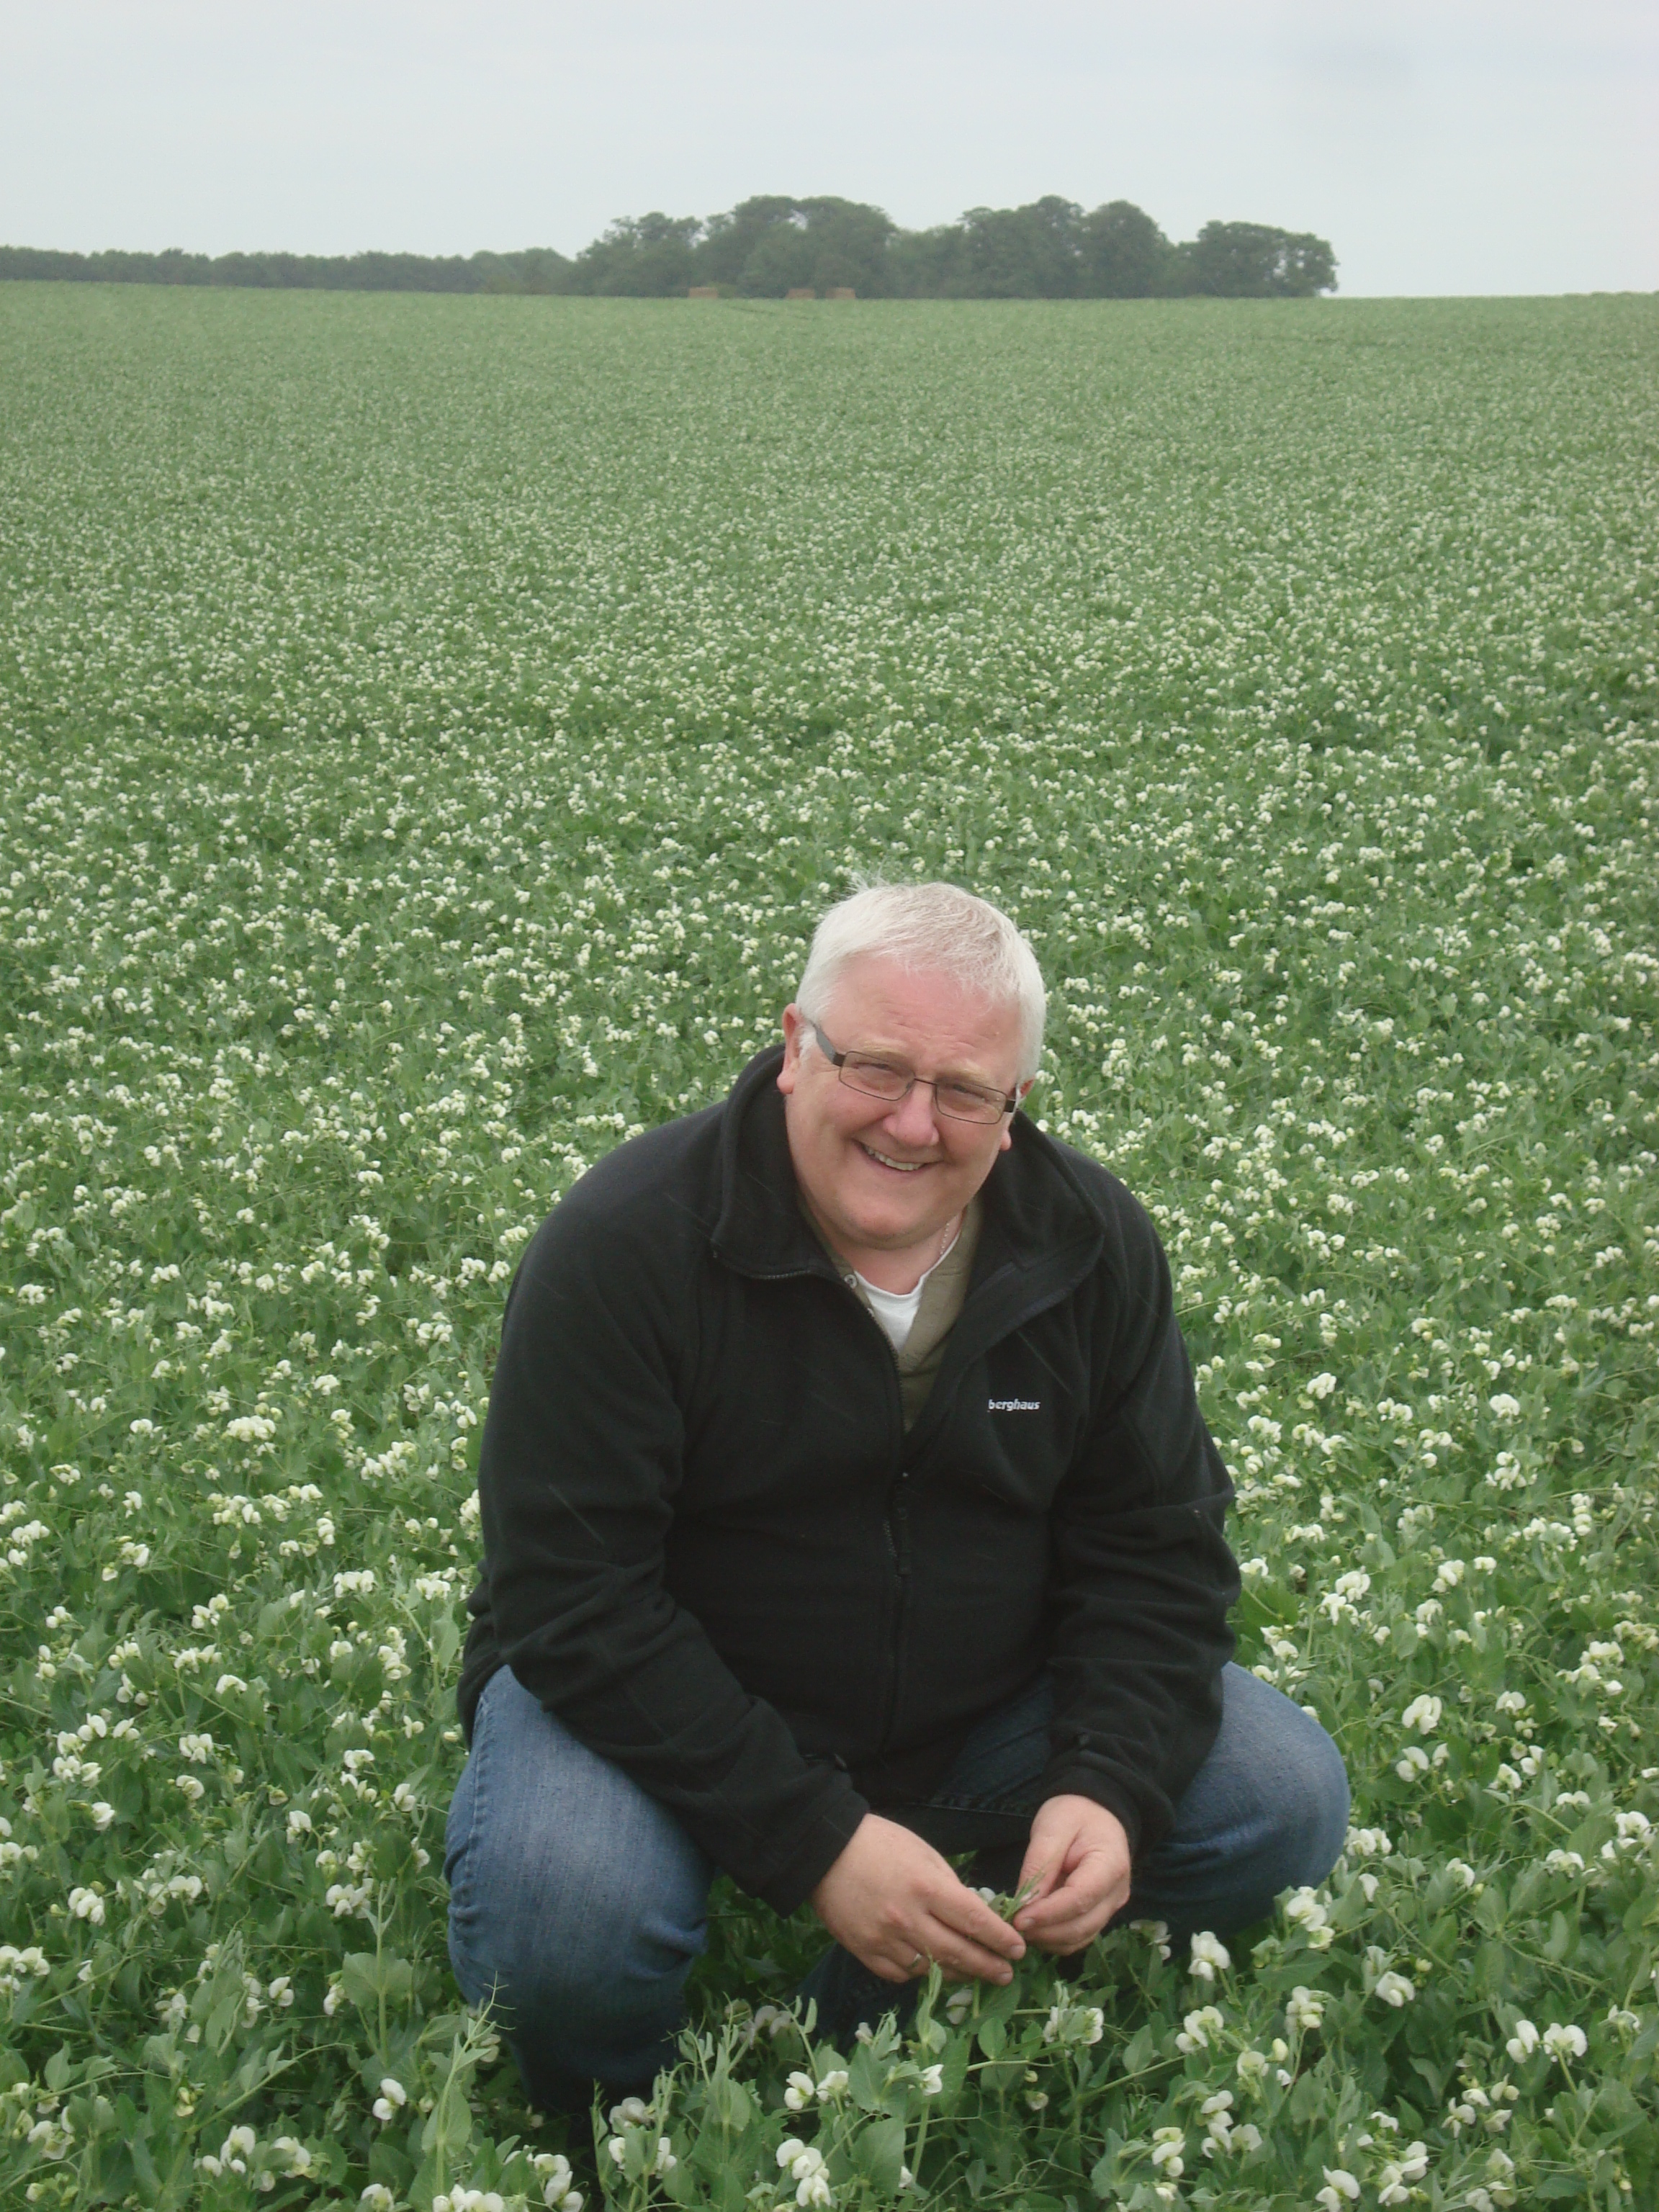 Stuart Ashton the Customer from PinguinLutosa out inspecting the coming seasons crops